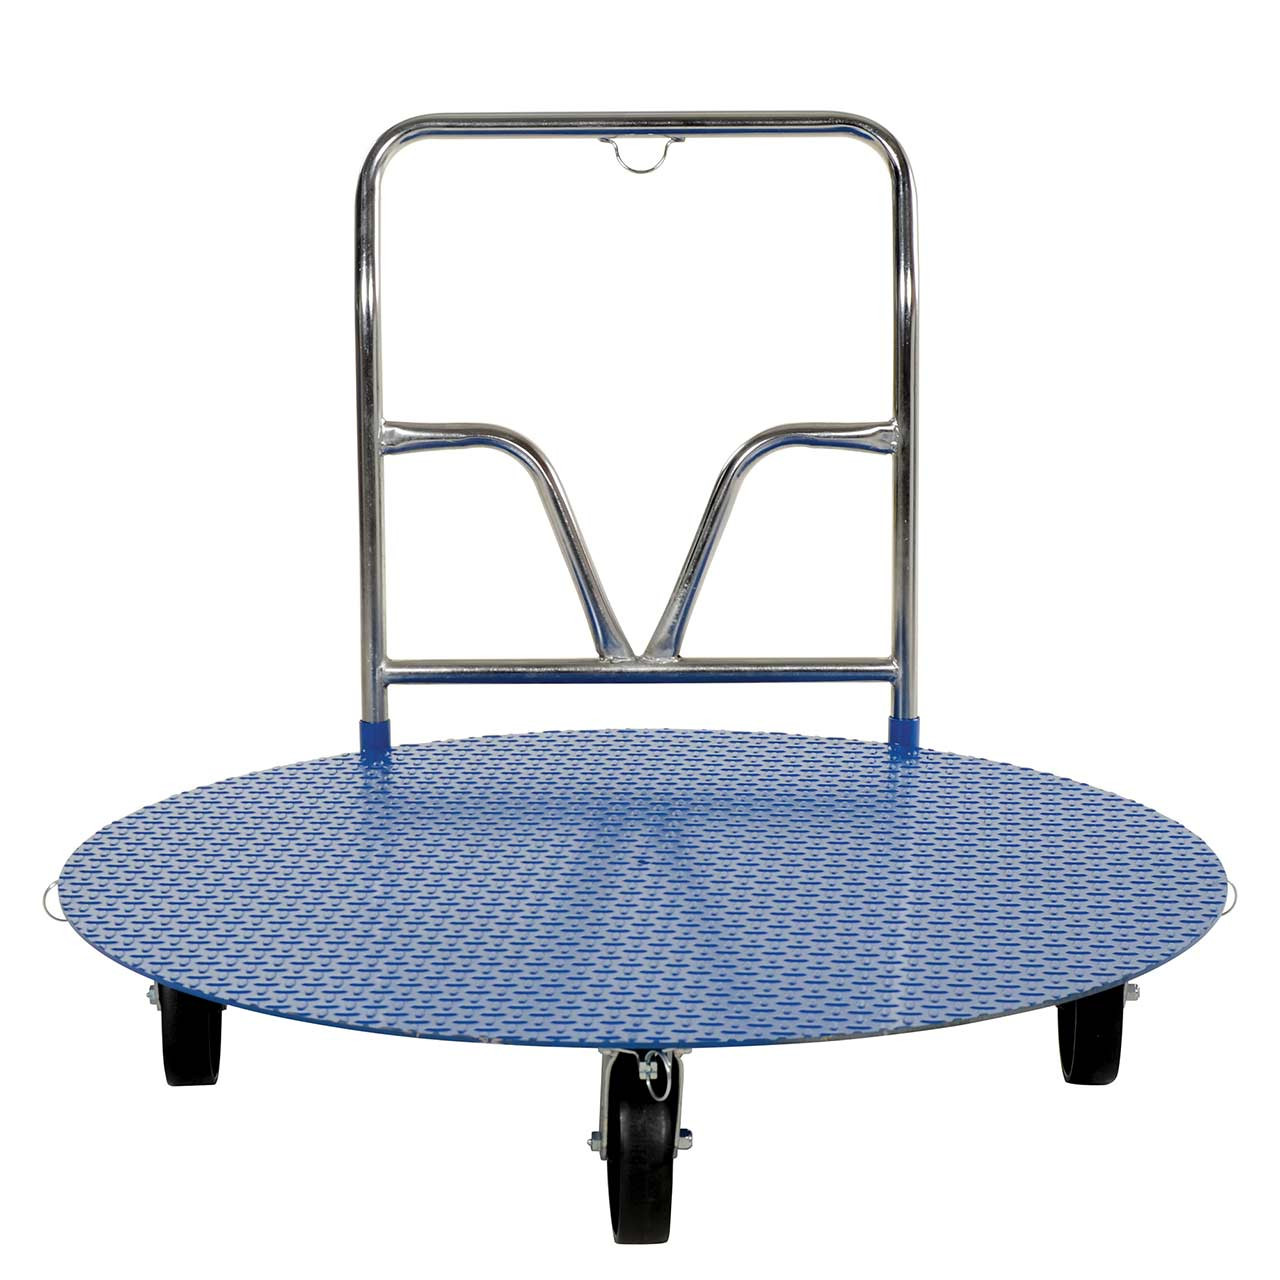 Front view of pallet carts with carousel